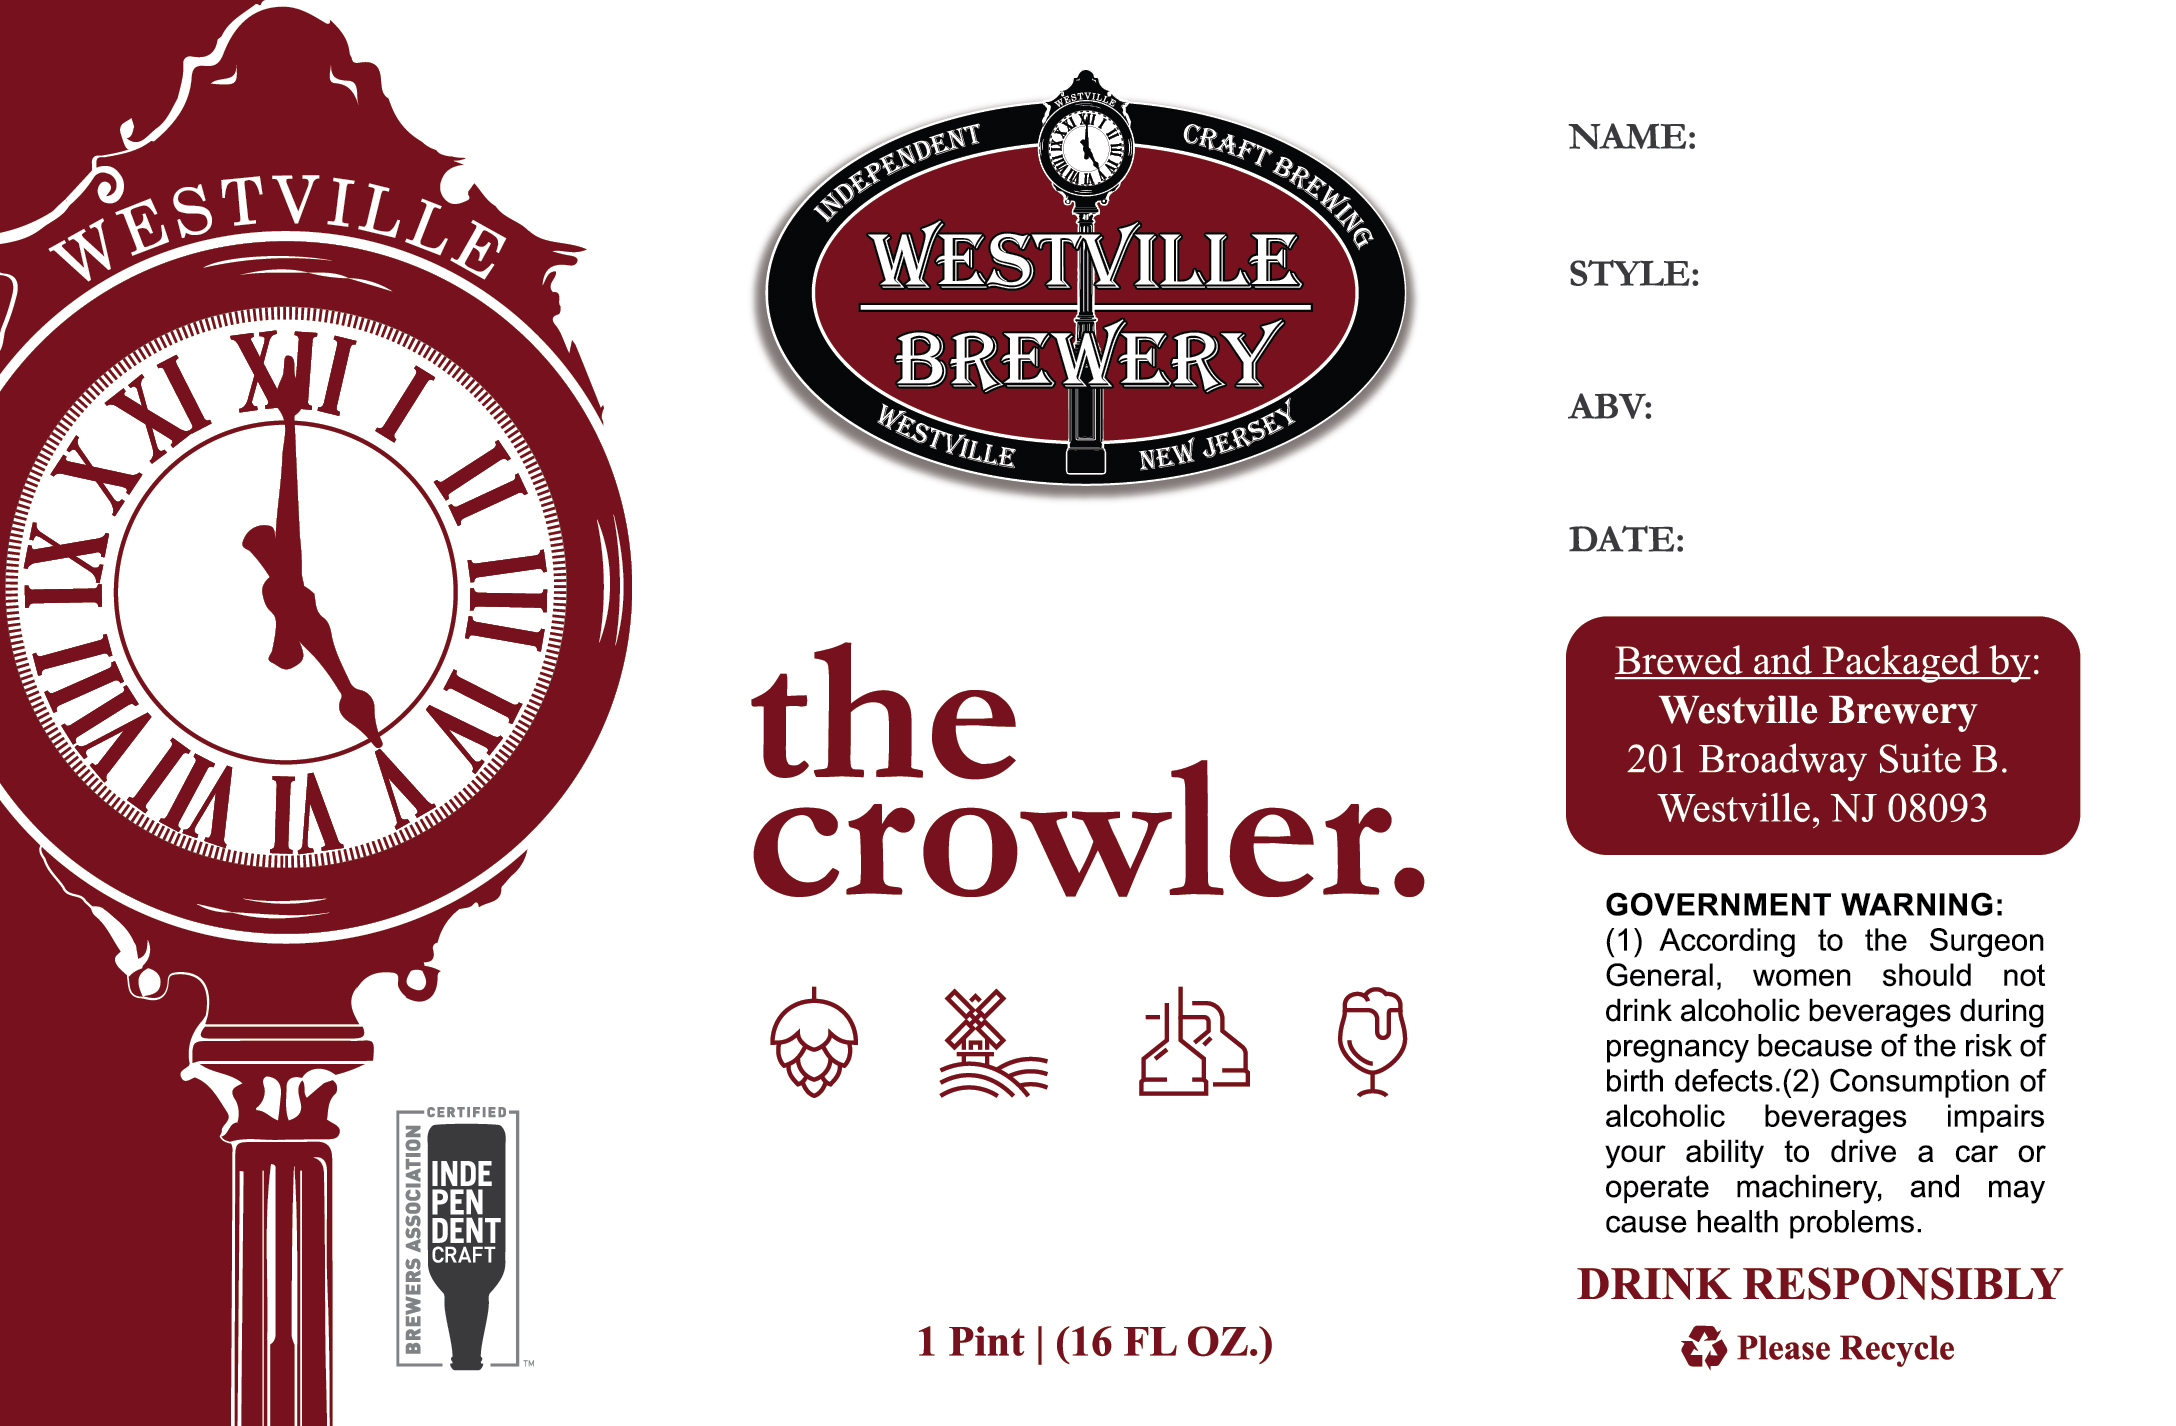 Westville-Brewery-Production-Files-03